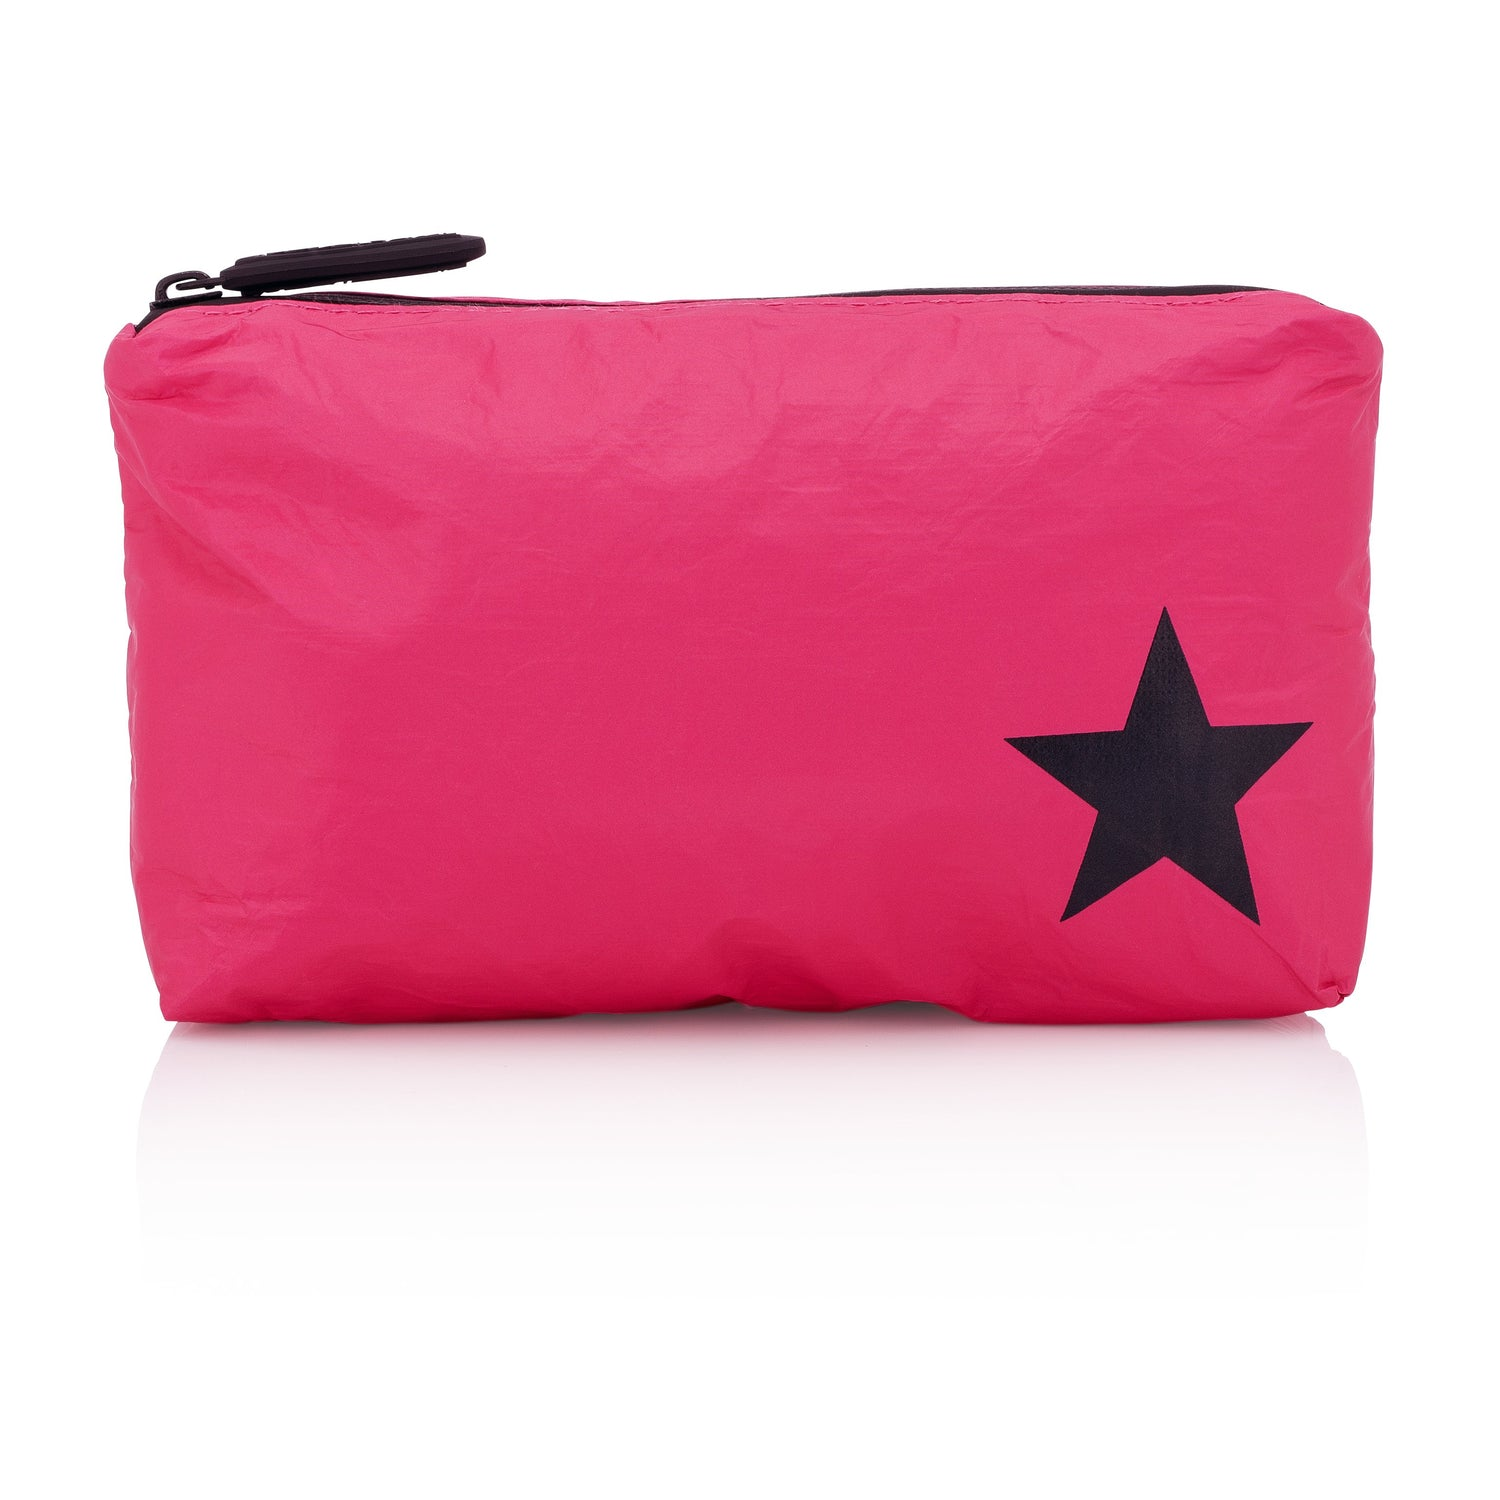 Mini Pack - Pink Peacock with Black Star